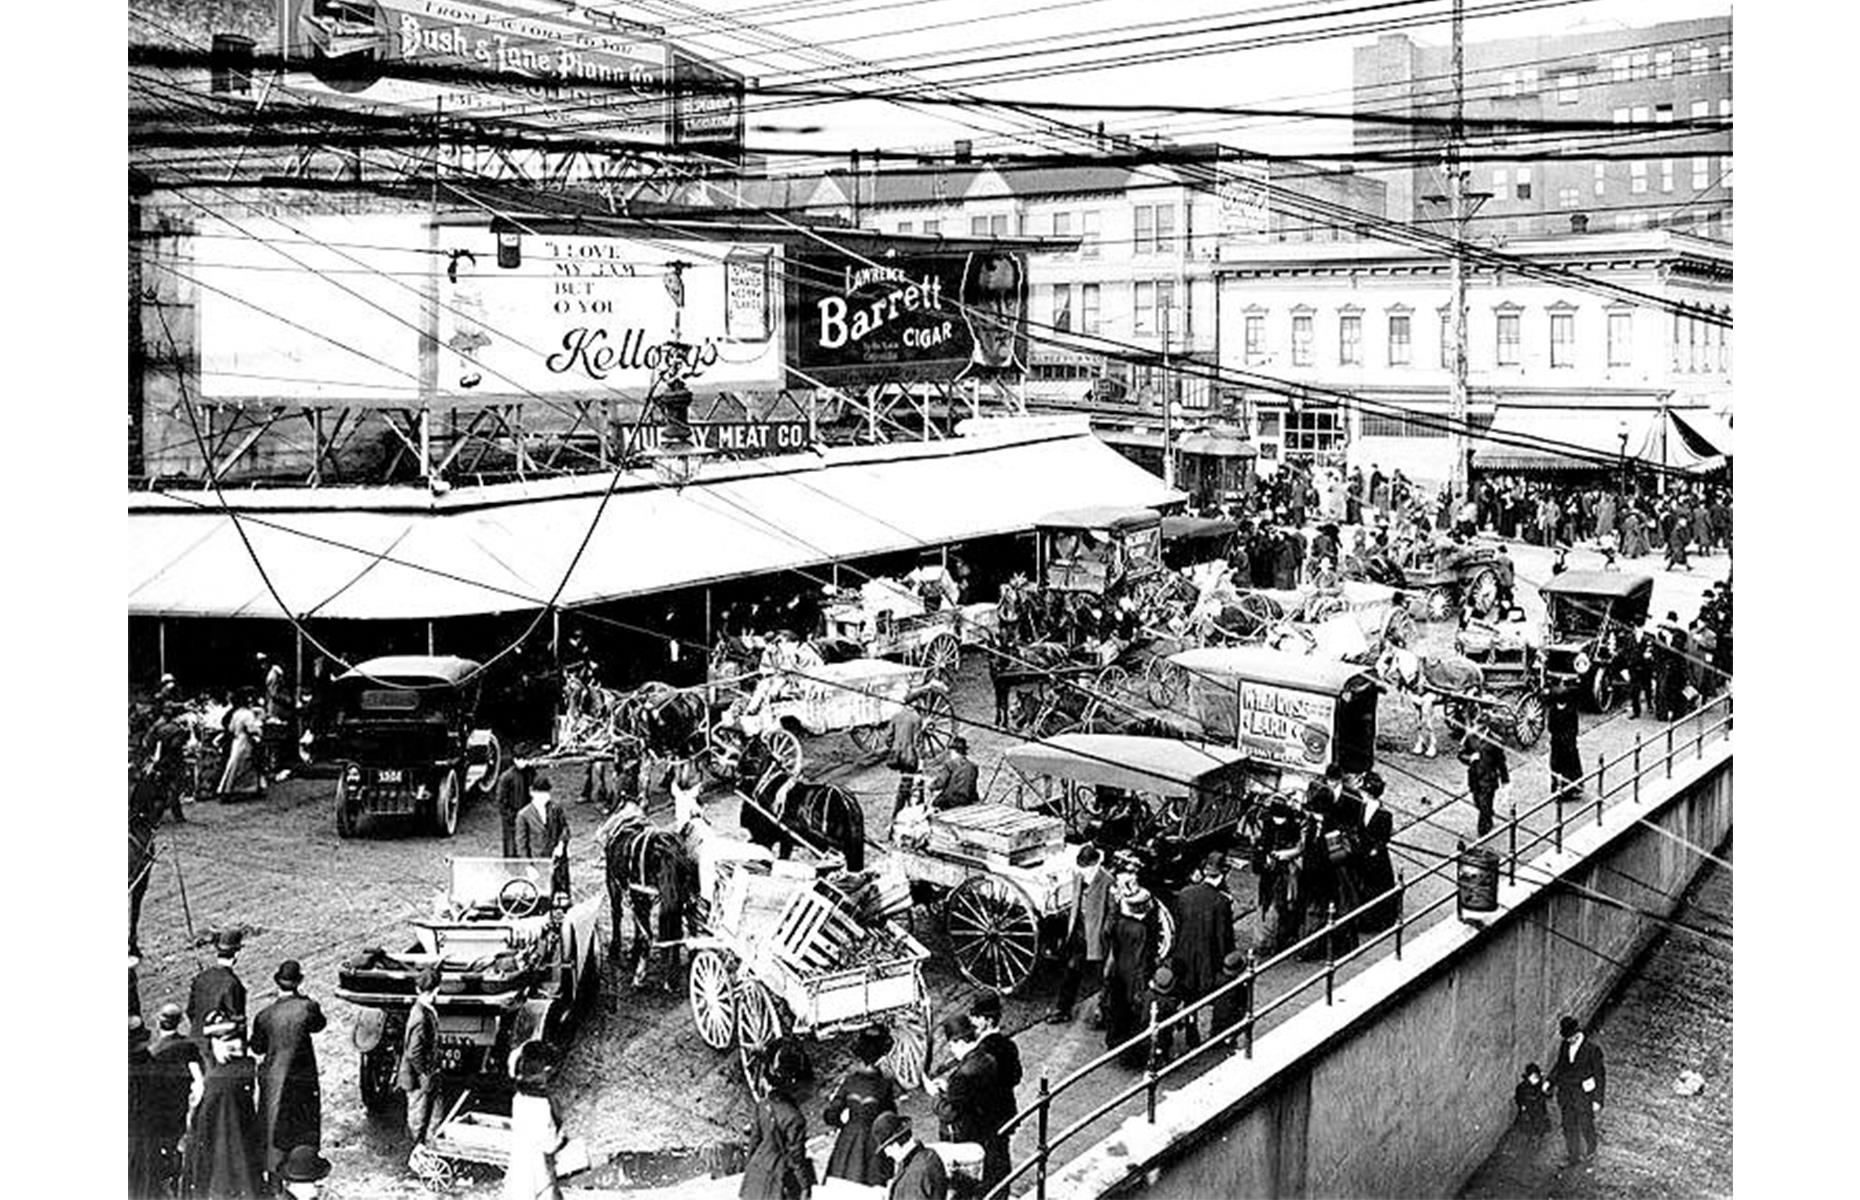 Slide 35 of 47: Seattle's Pike Place Market has been loved by locals and tourists alike since it opened back in 1907. It was originally built as the burgeoning city of Seattle demanded more fresh produce from local farmers – on the opening day, in August 1907, farmers brought wagons brimming with fruit and veg to the marketplace, and they quickly sold out. This photo shows wagons parked up outside the market around 1910.